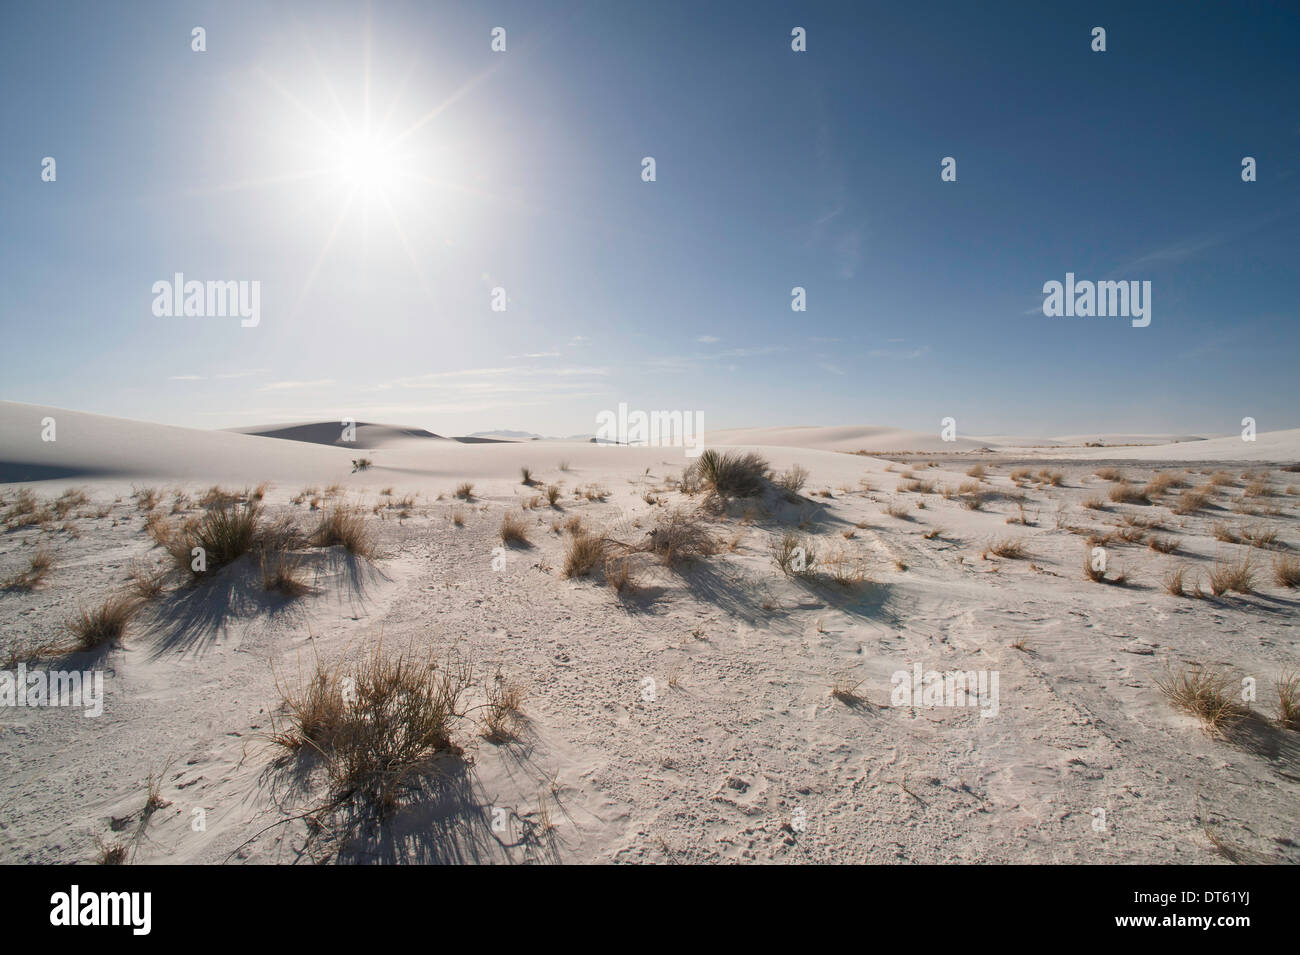 Sand dune and shrubs, White sands, New Mexico, USA - Stock Image